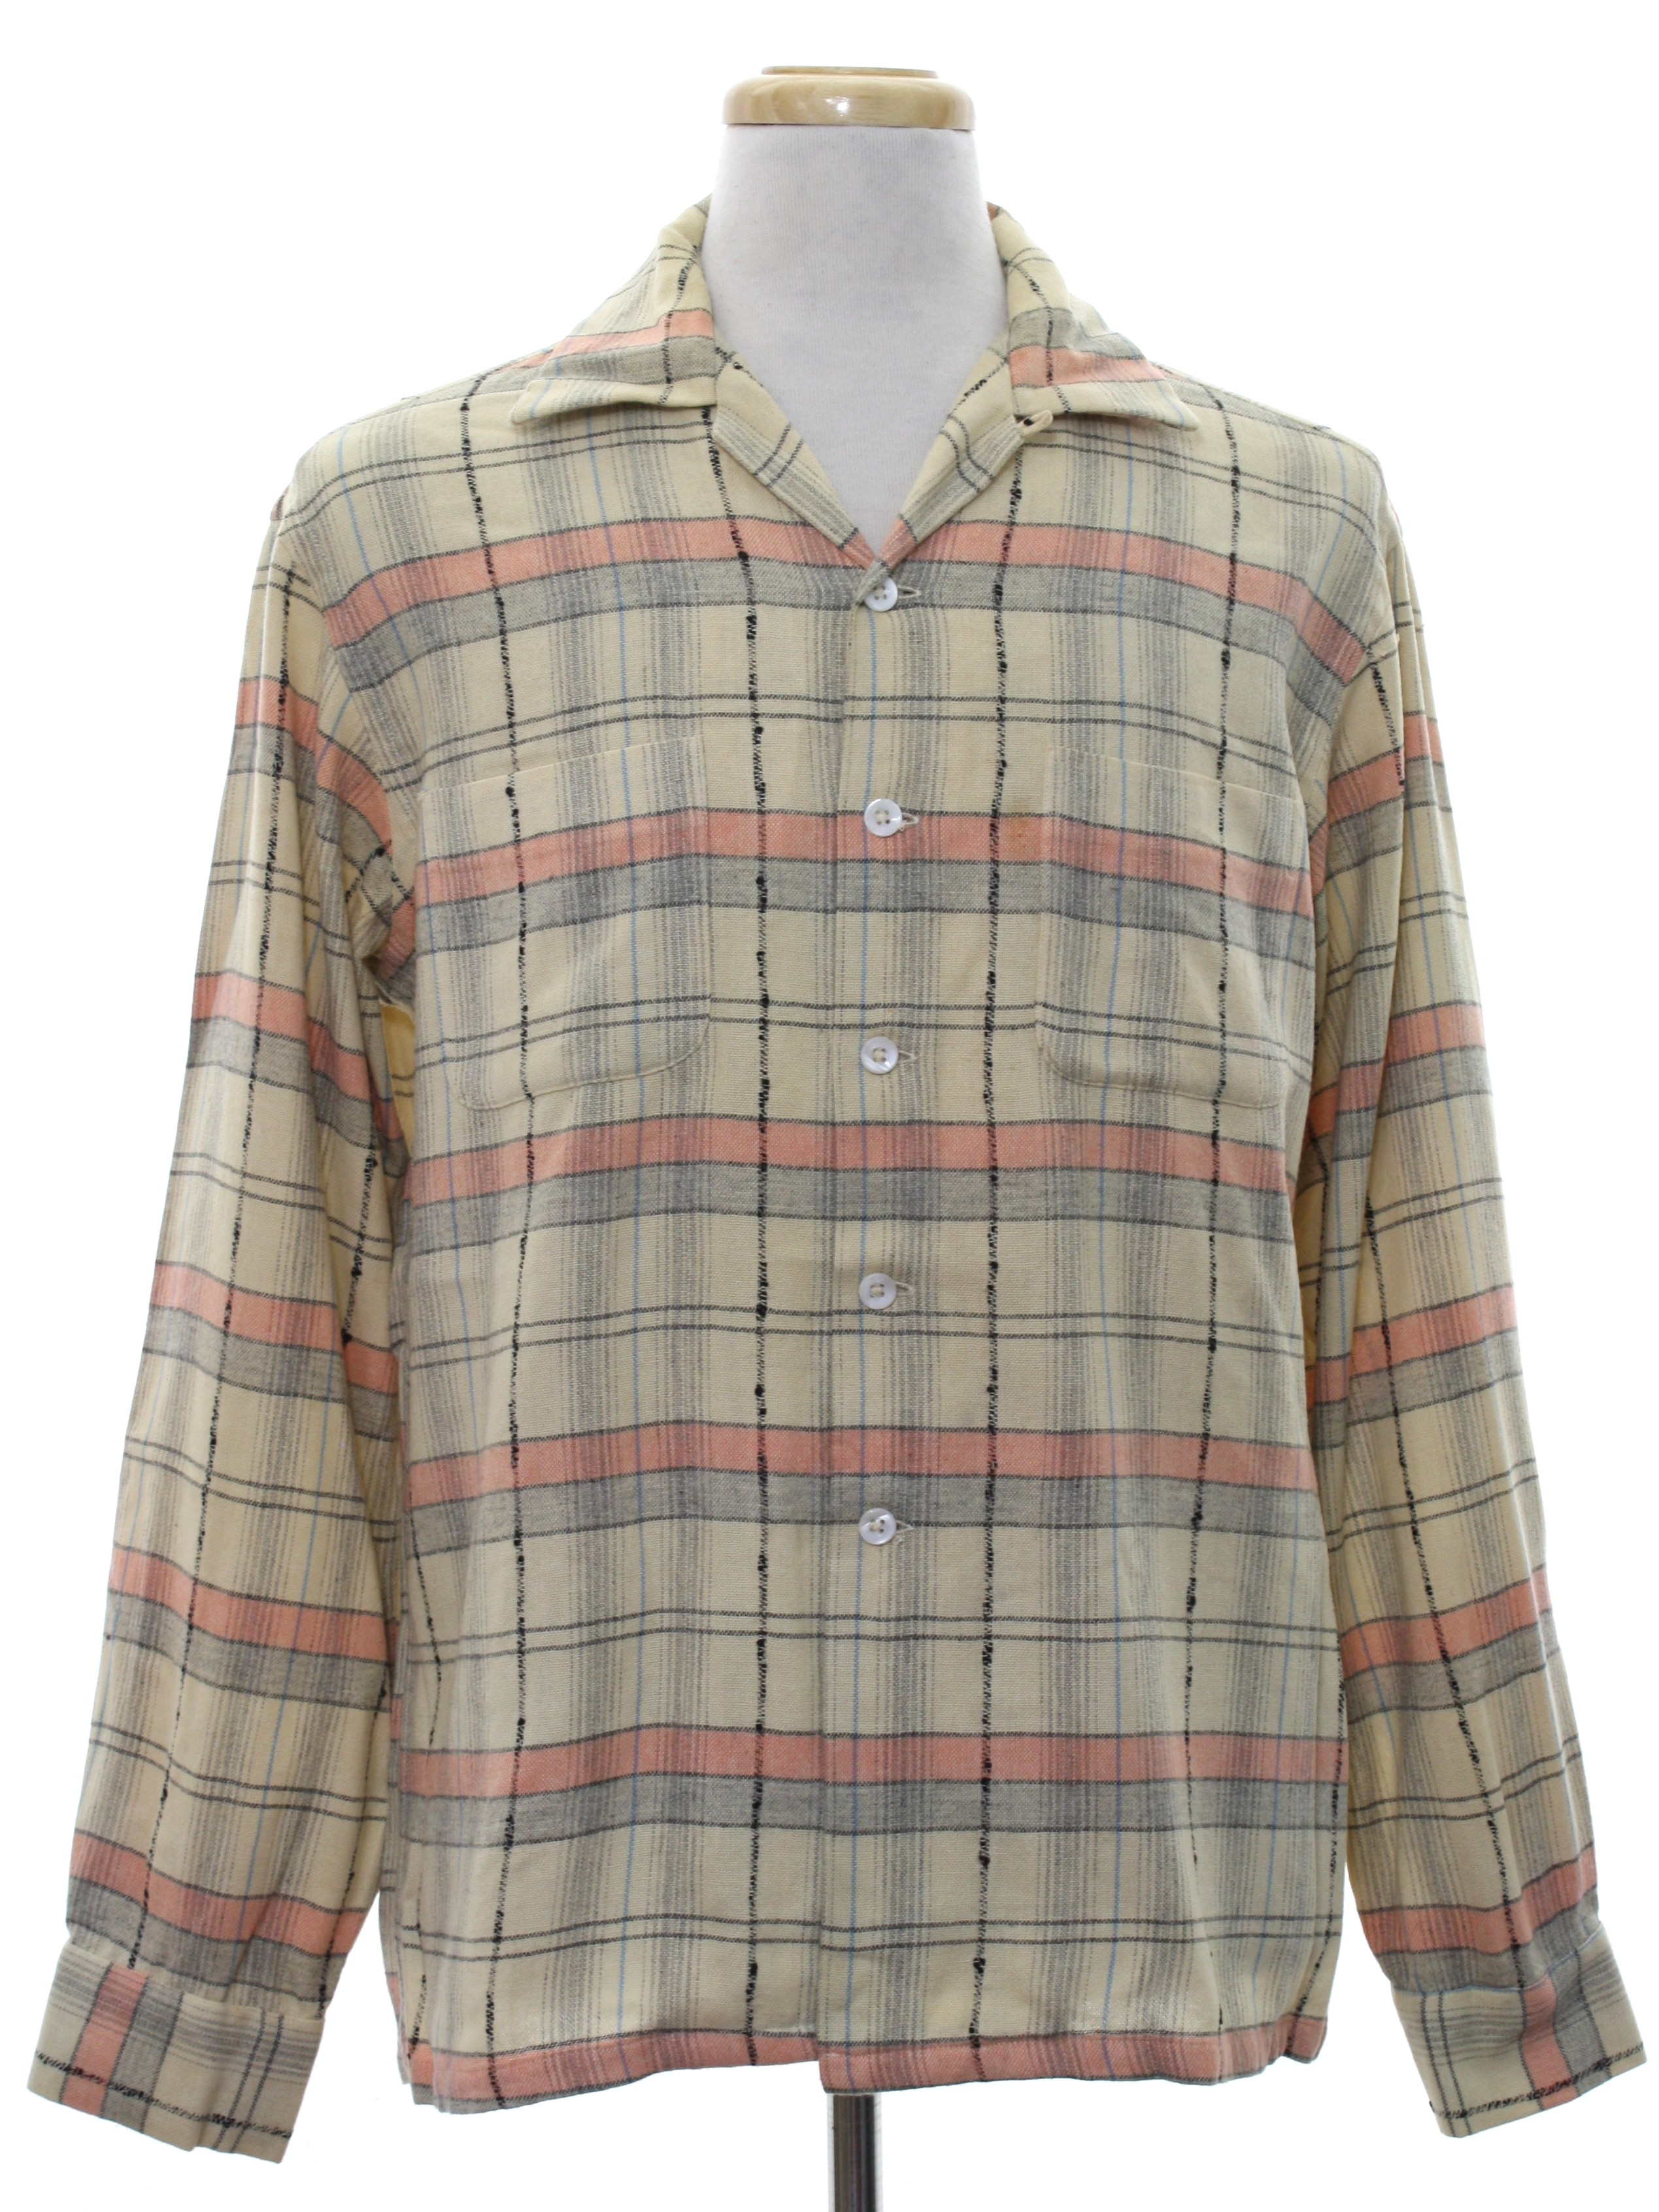 Vintage Mcgregor 1950s Shirt Late 50s Or Early 60s